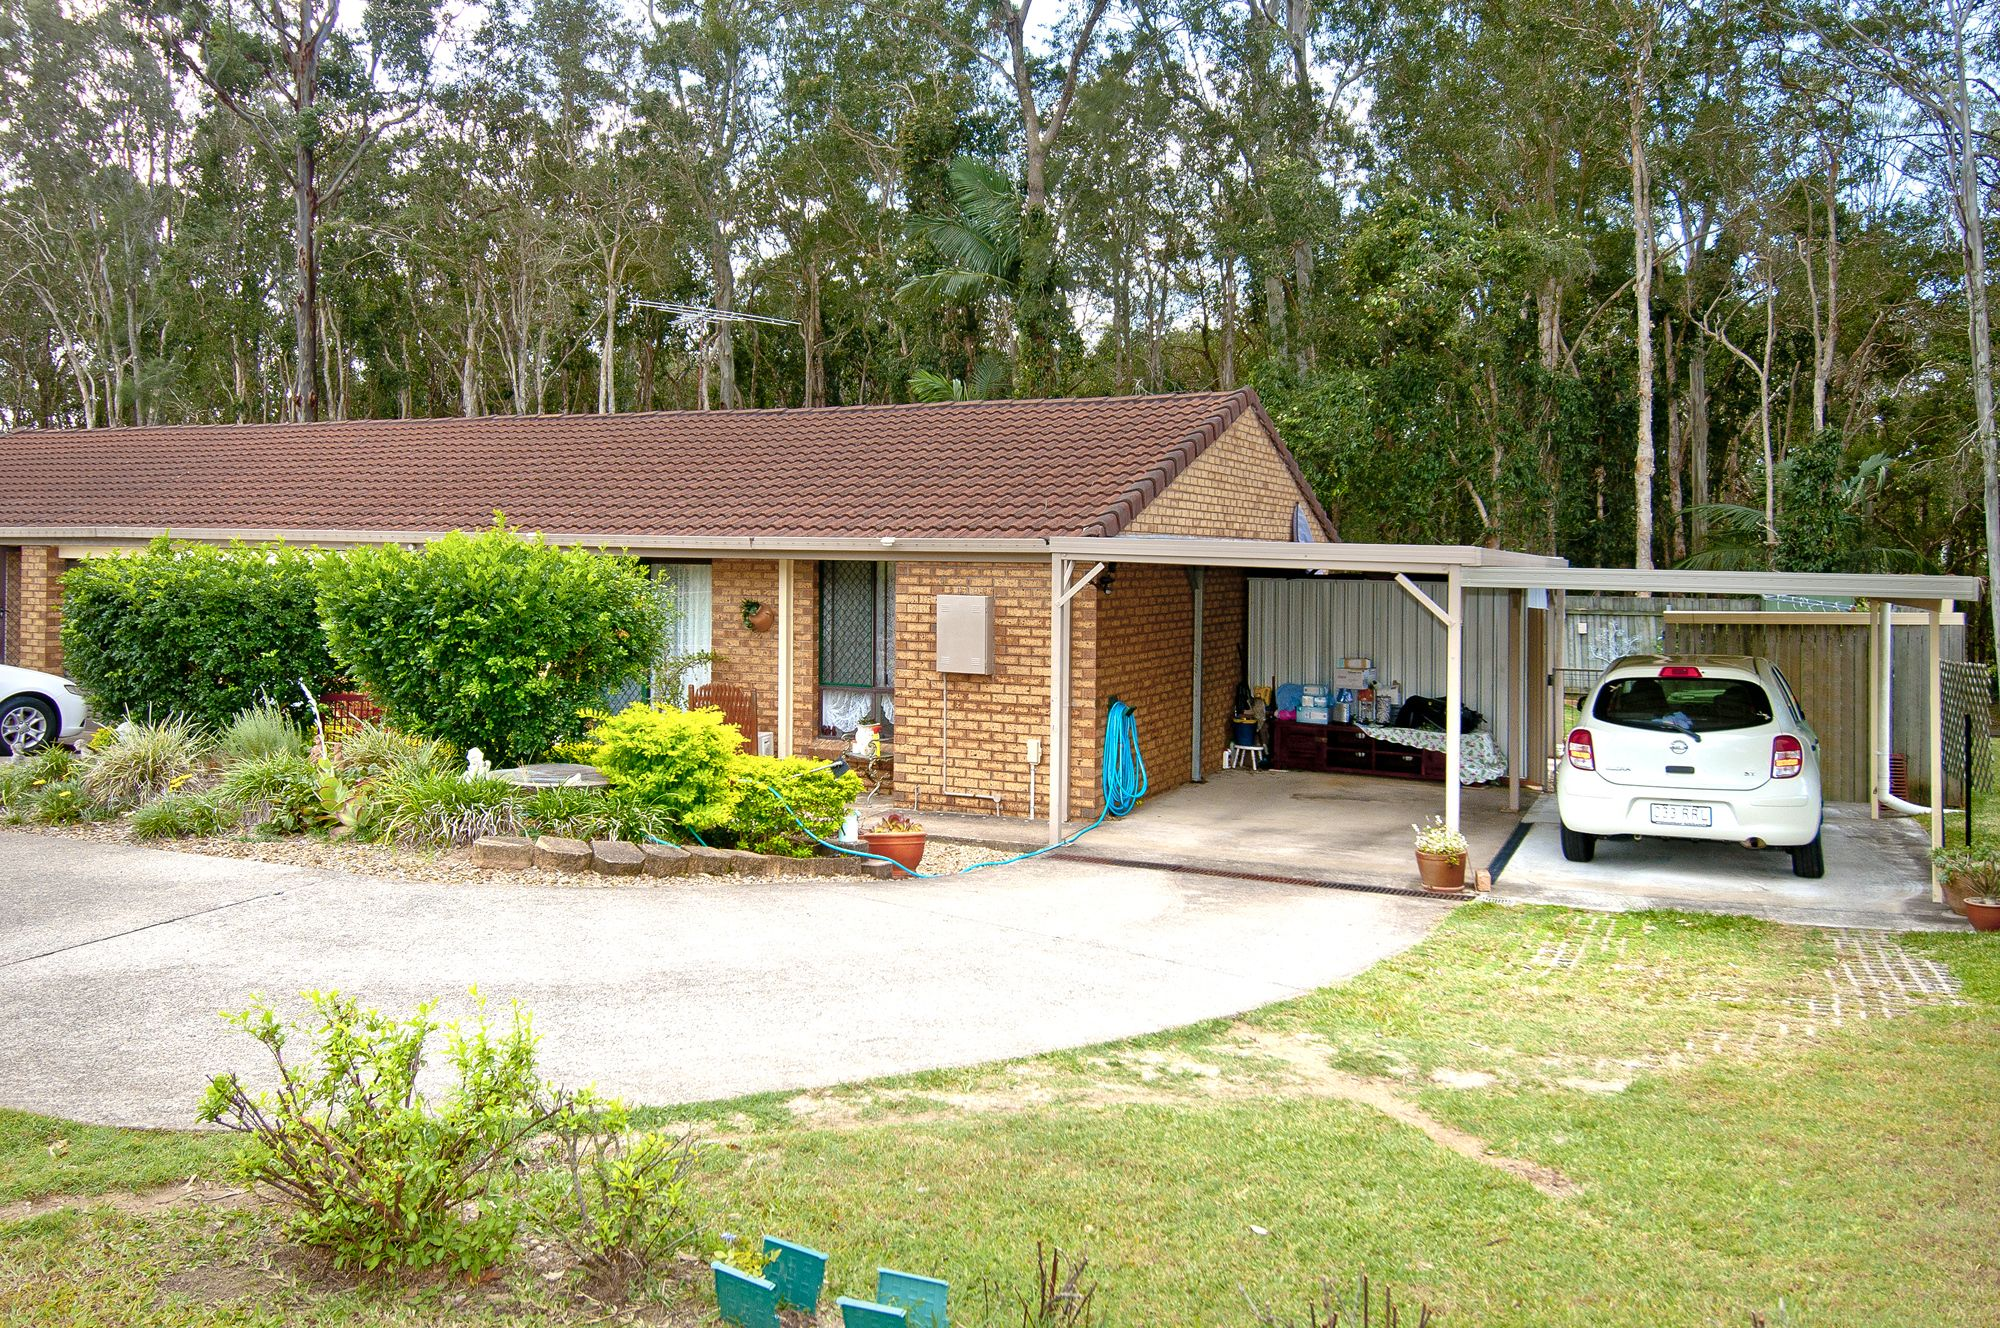 16/91 Dorset Drive, Rochedale South